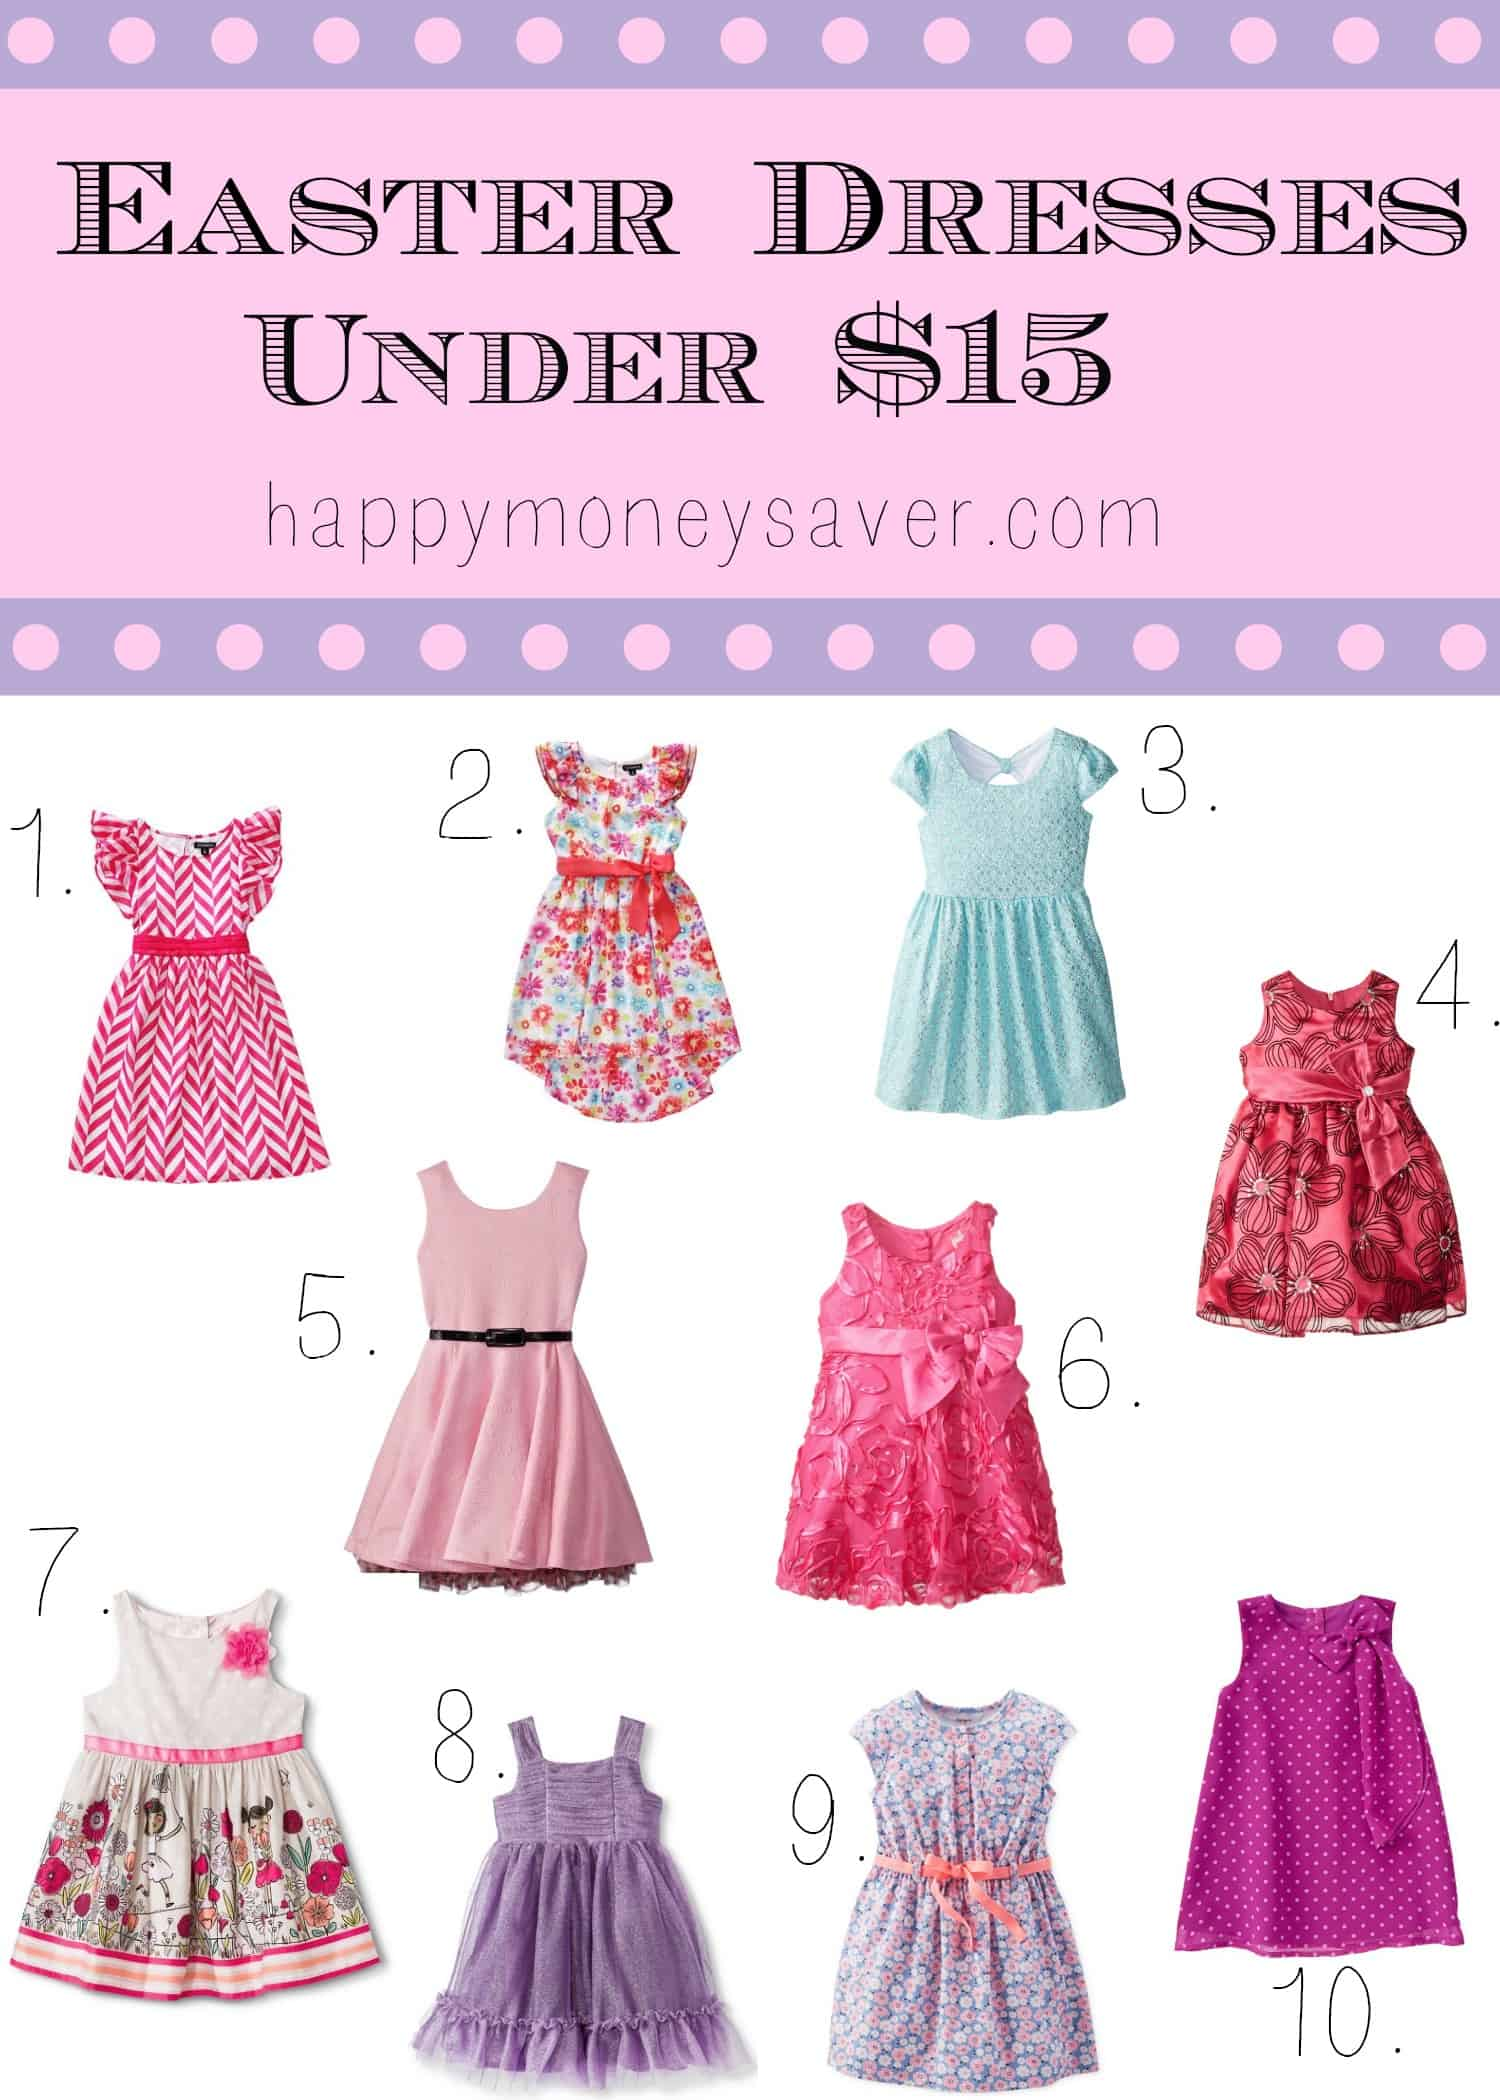 10 BEAUTIFUL Little Girls Easter dresses under $15